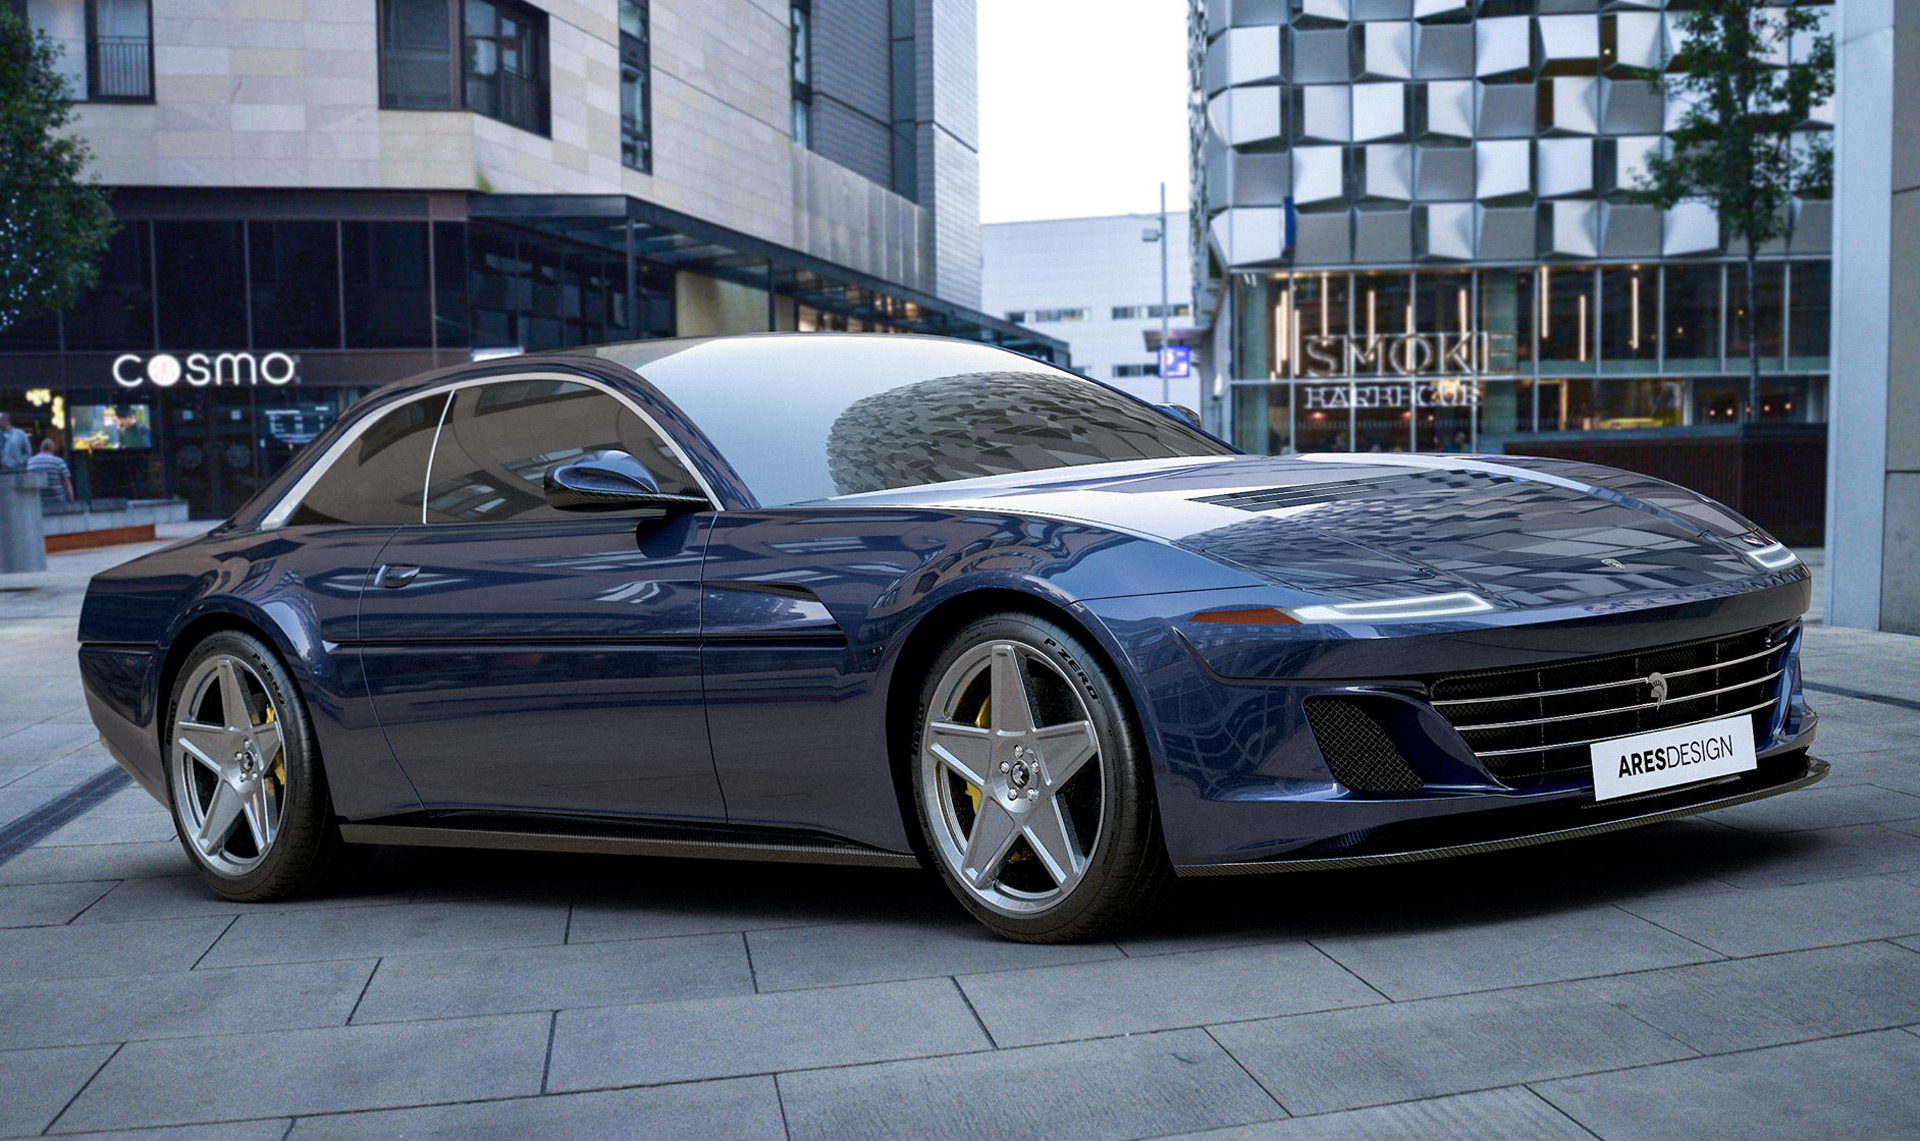 Ares turns the Ferrari GTC4 Lusso into a modern 412